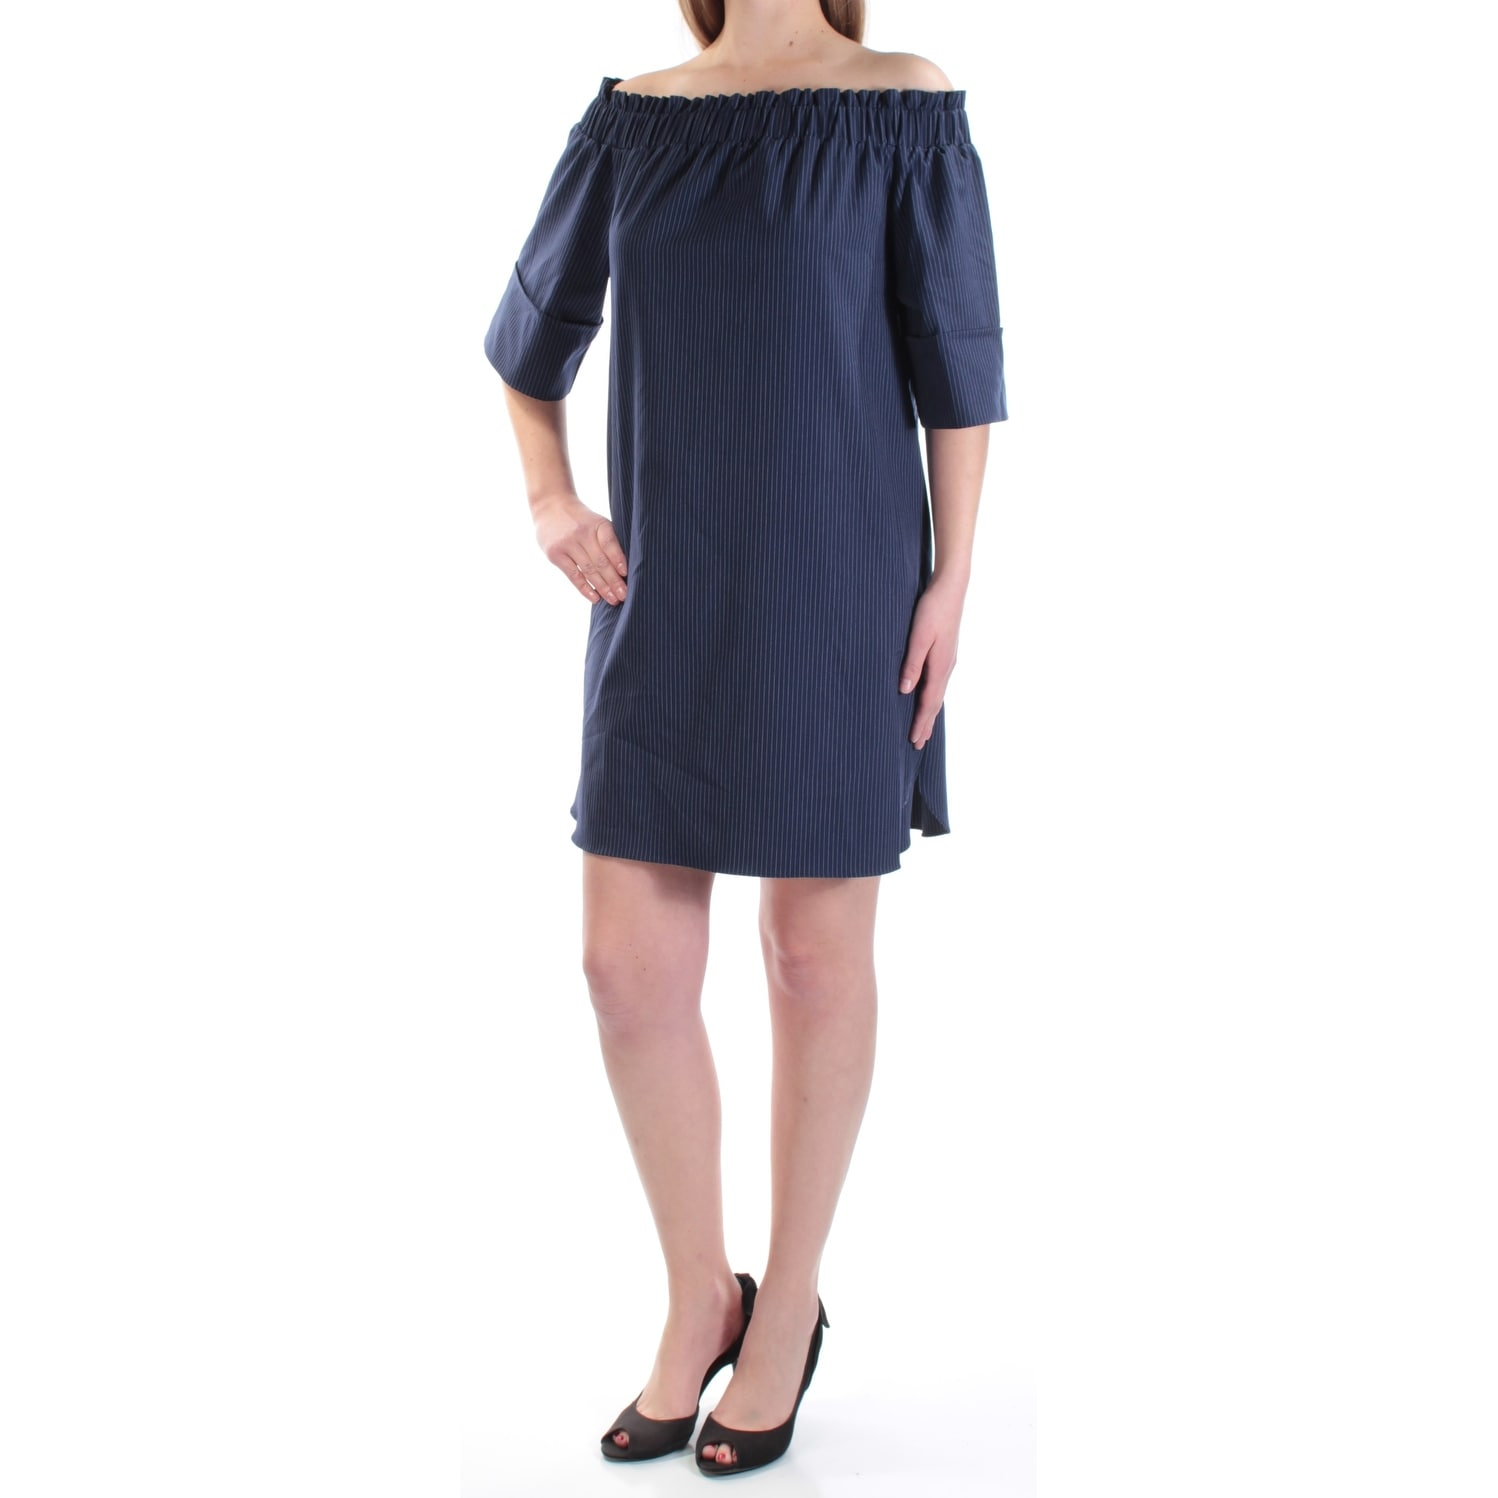 fa793e0795 Shop RACHEL ROY Womens Navy Pinstripe 3 4 Sleeve Off Shoulder Mini Shift  Dress Size  M - Free Shipping On Orders Over  45 - Overstock - 21331616